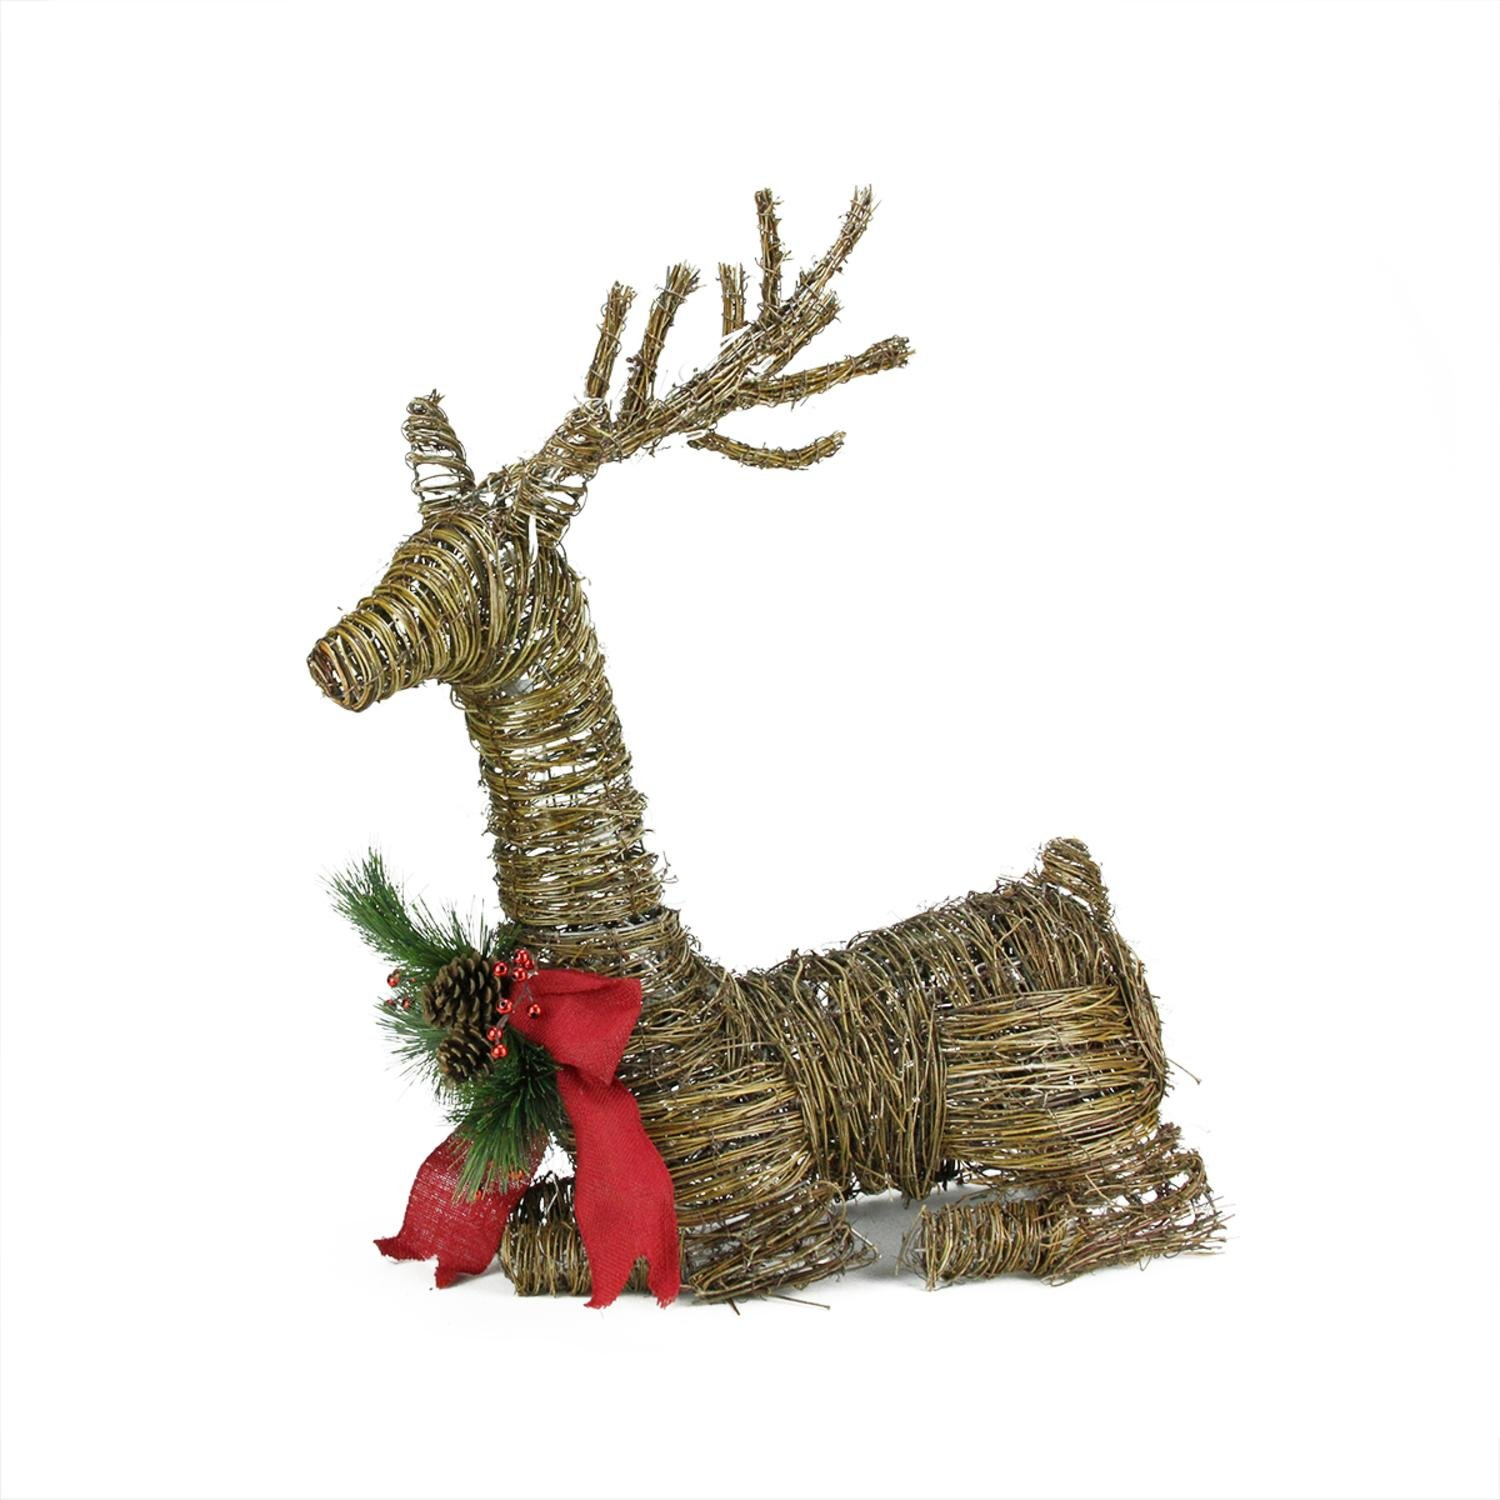 Lighted moose christmas yard decoration for Christmas lawn decorations